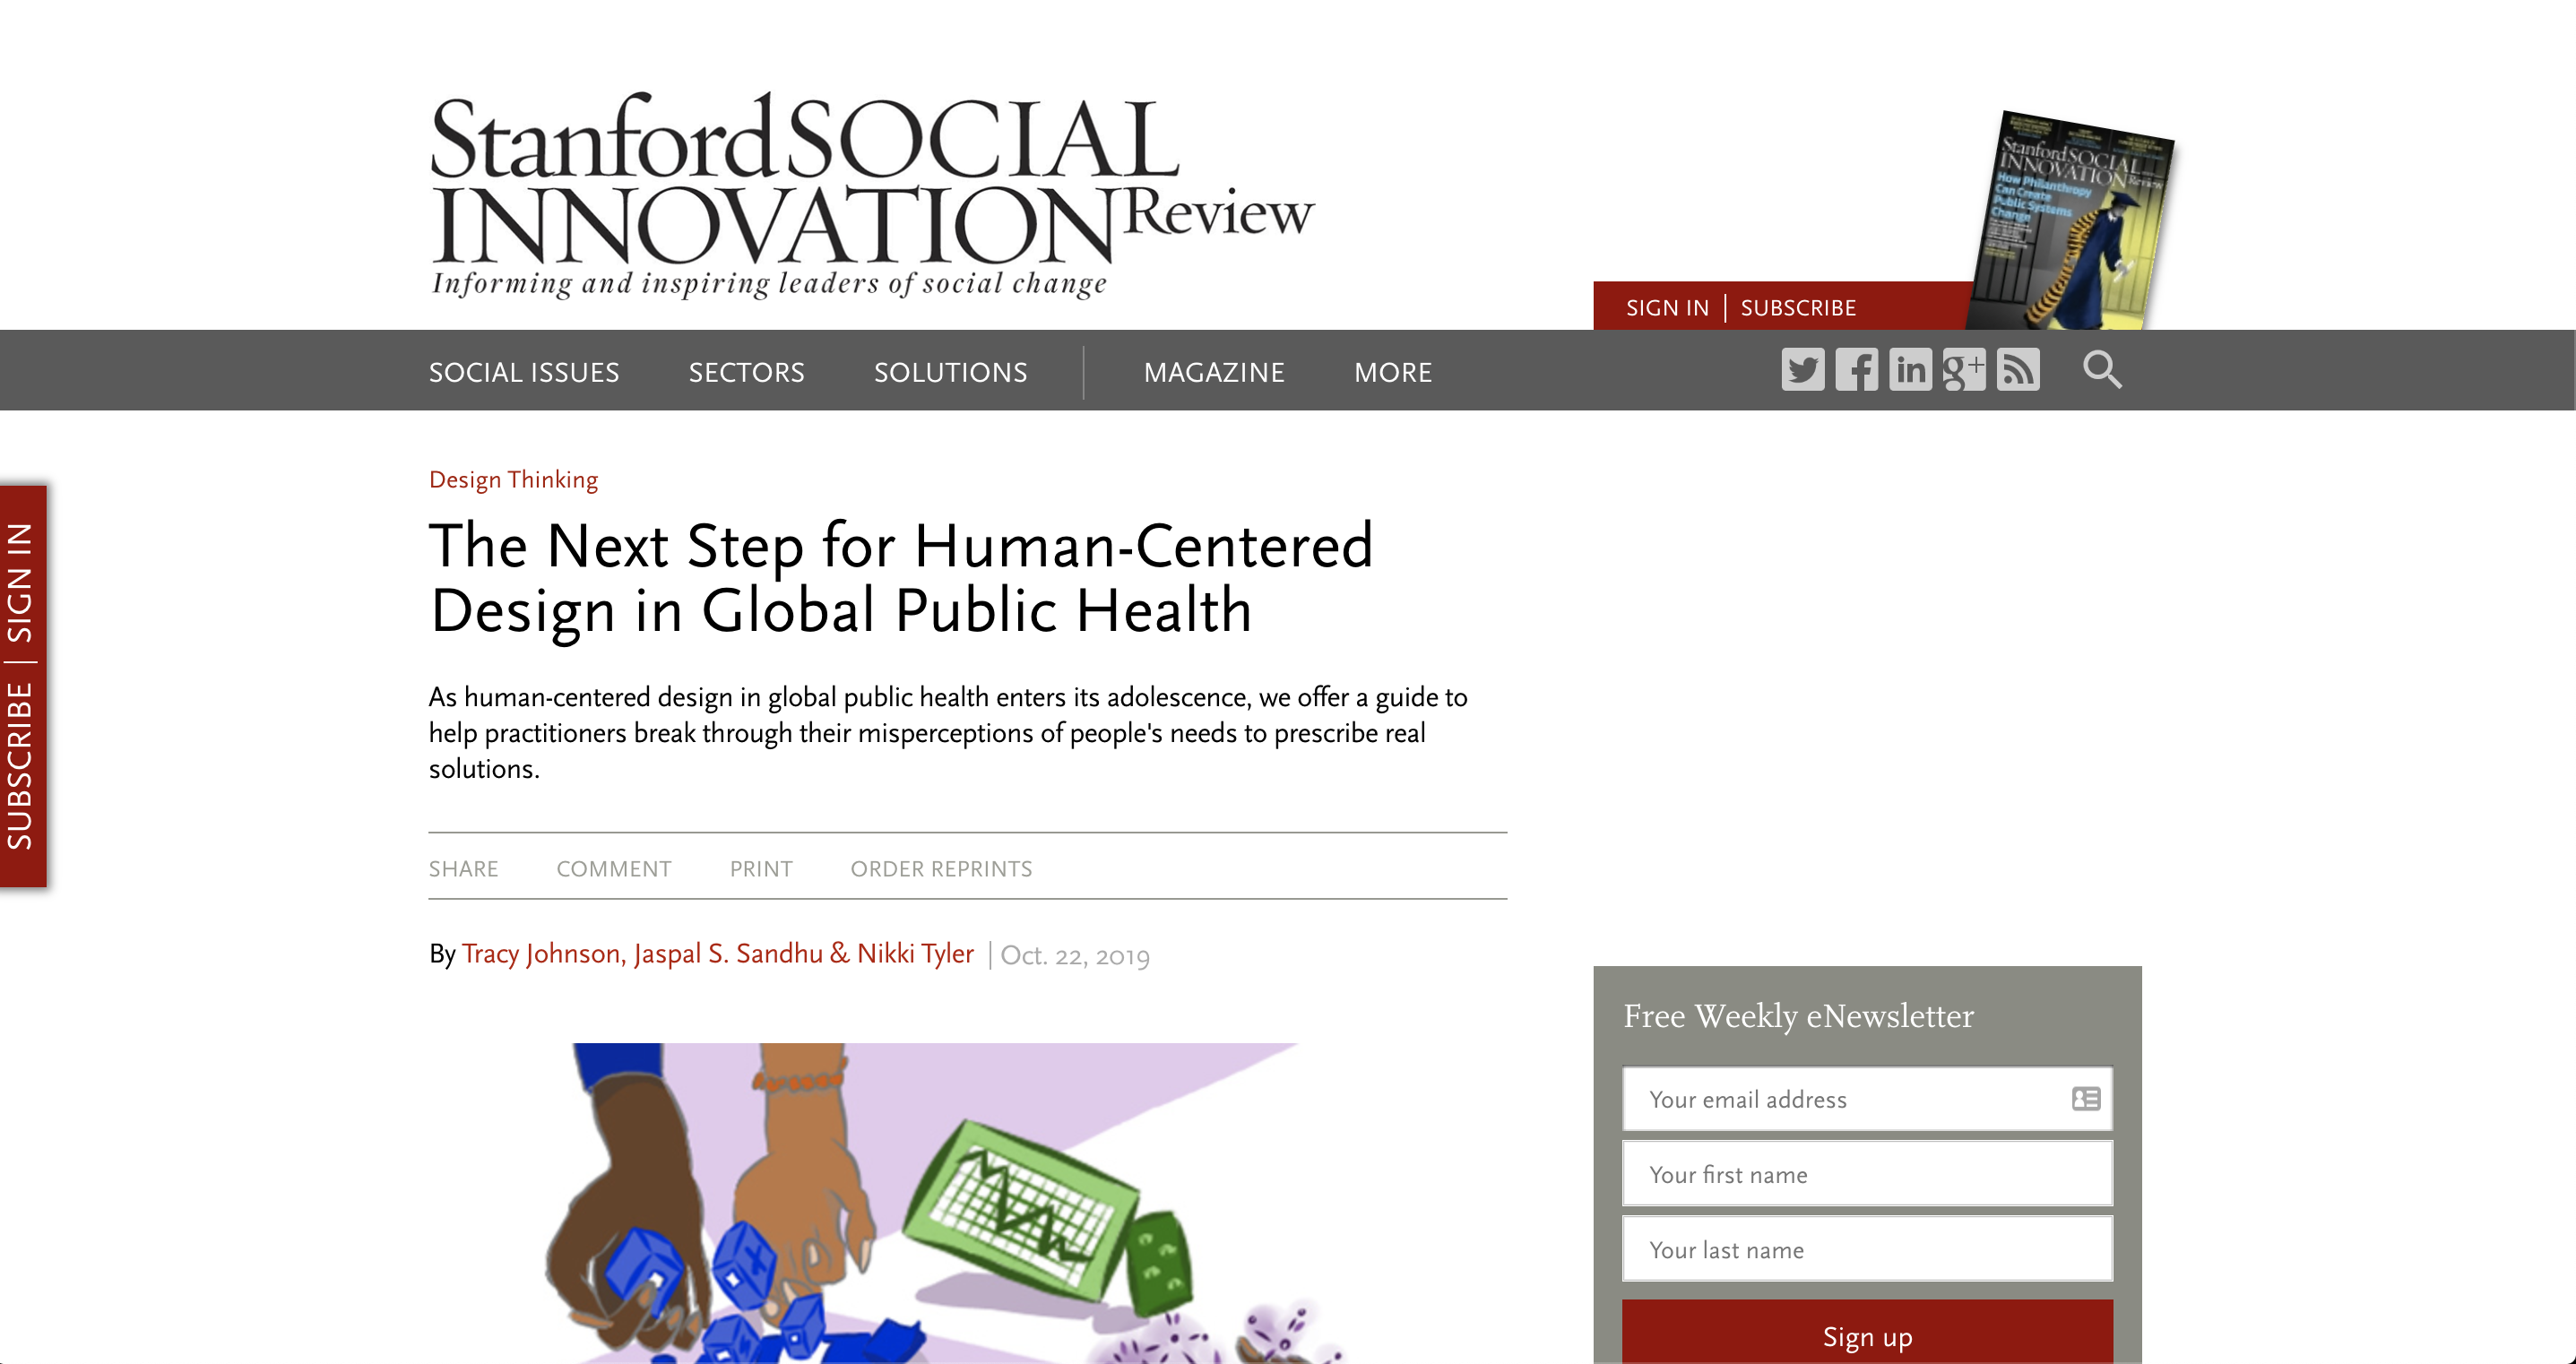 xt Step for Human-Centred Design in Global Public Health'